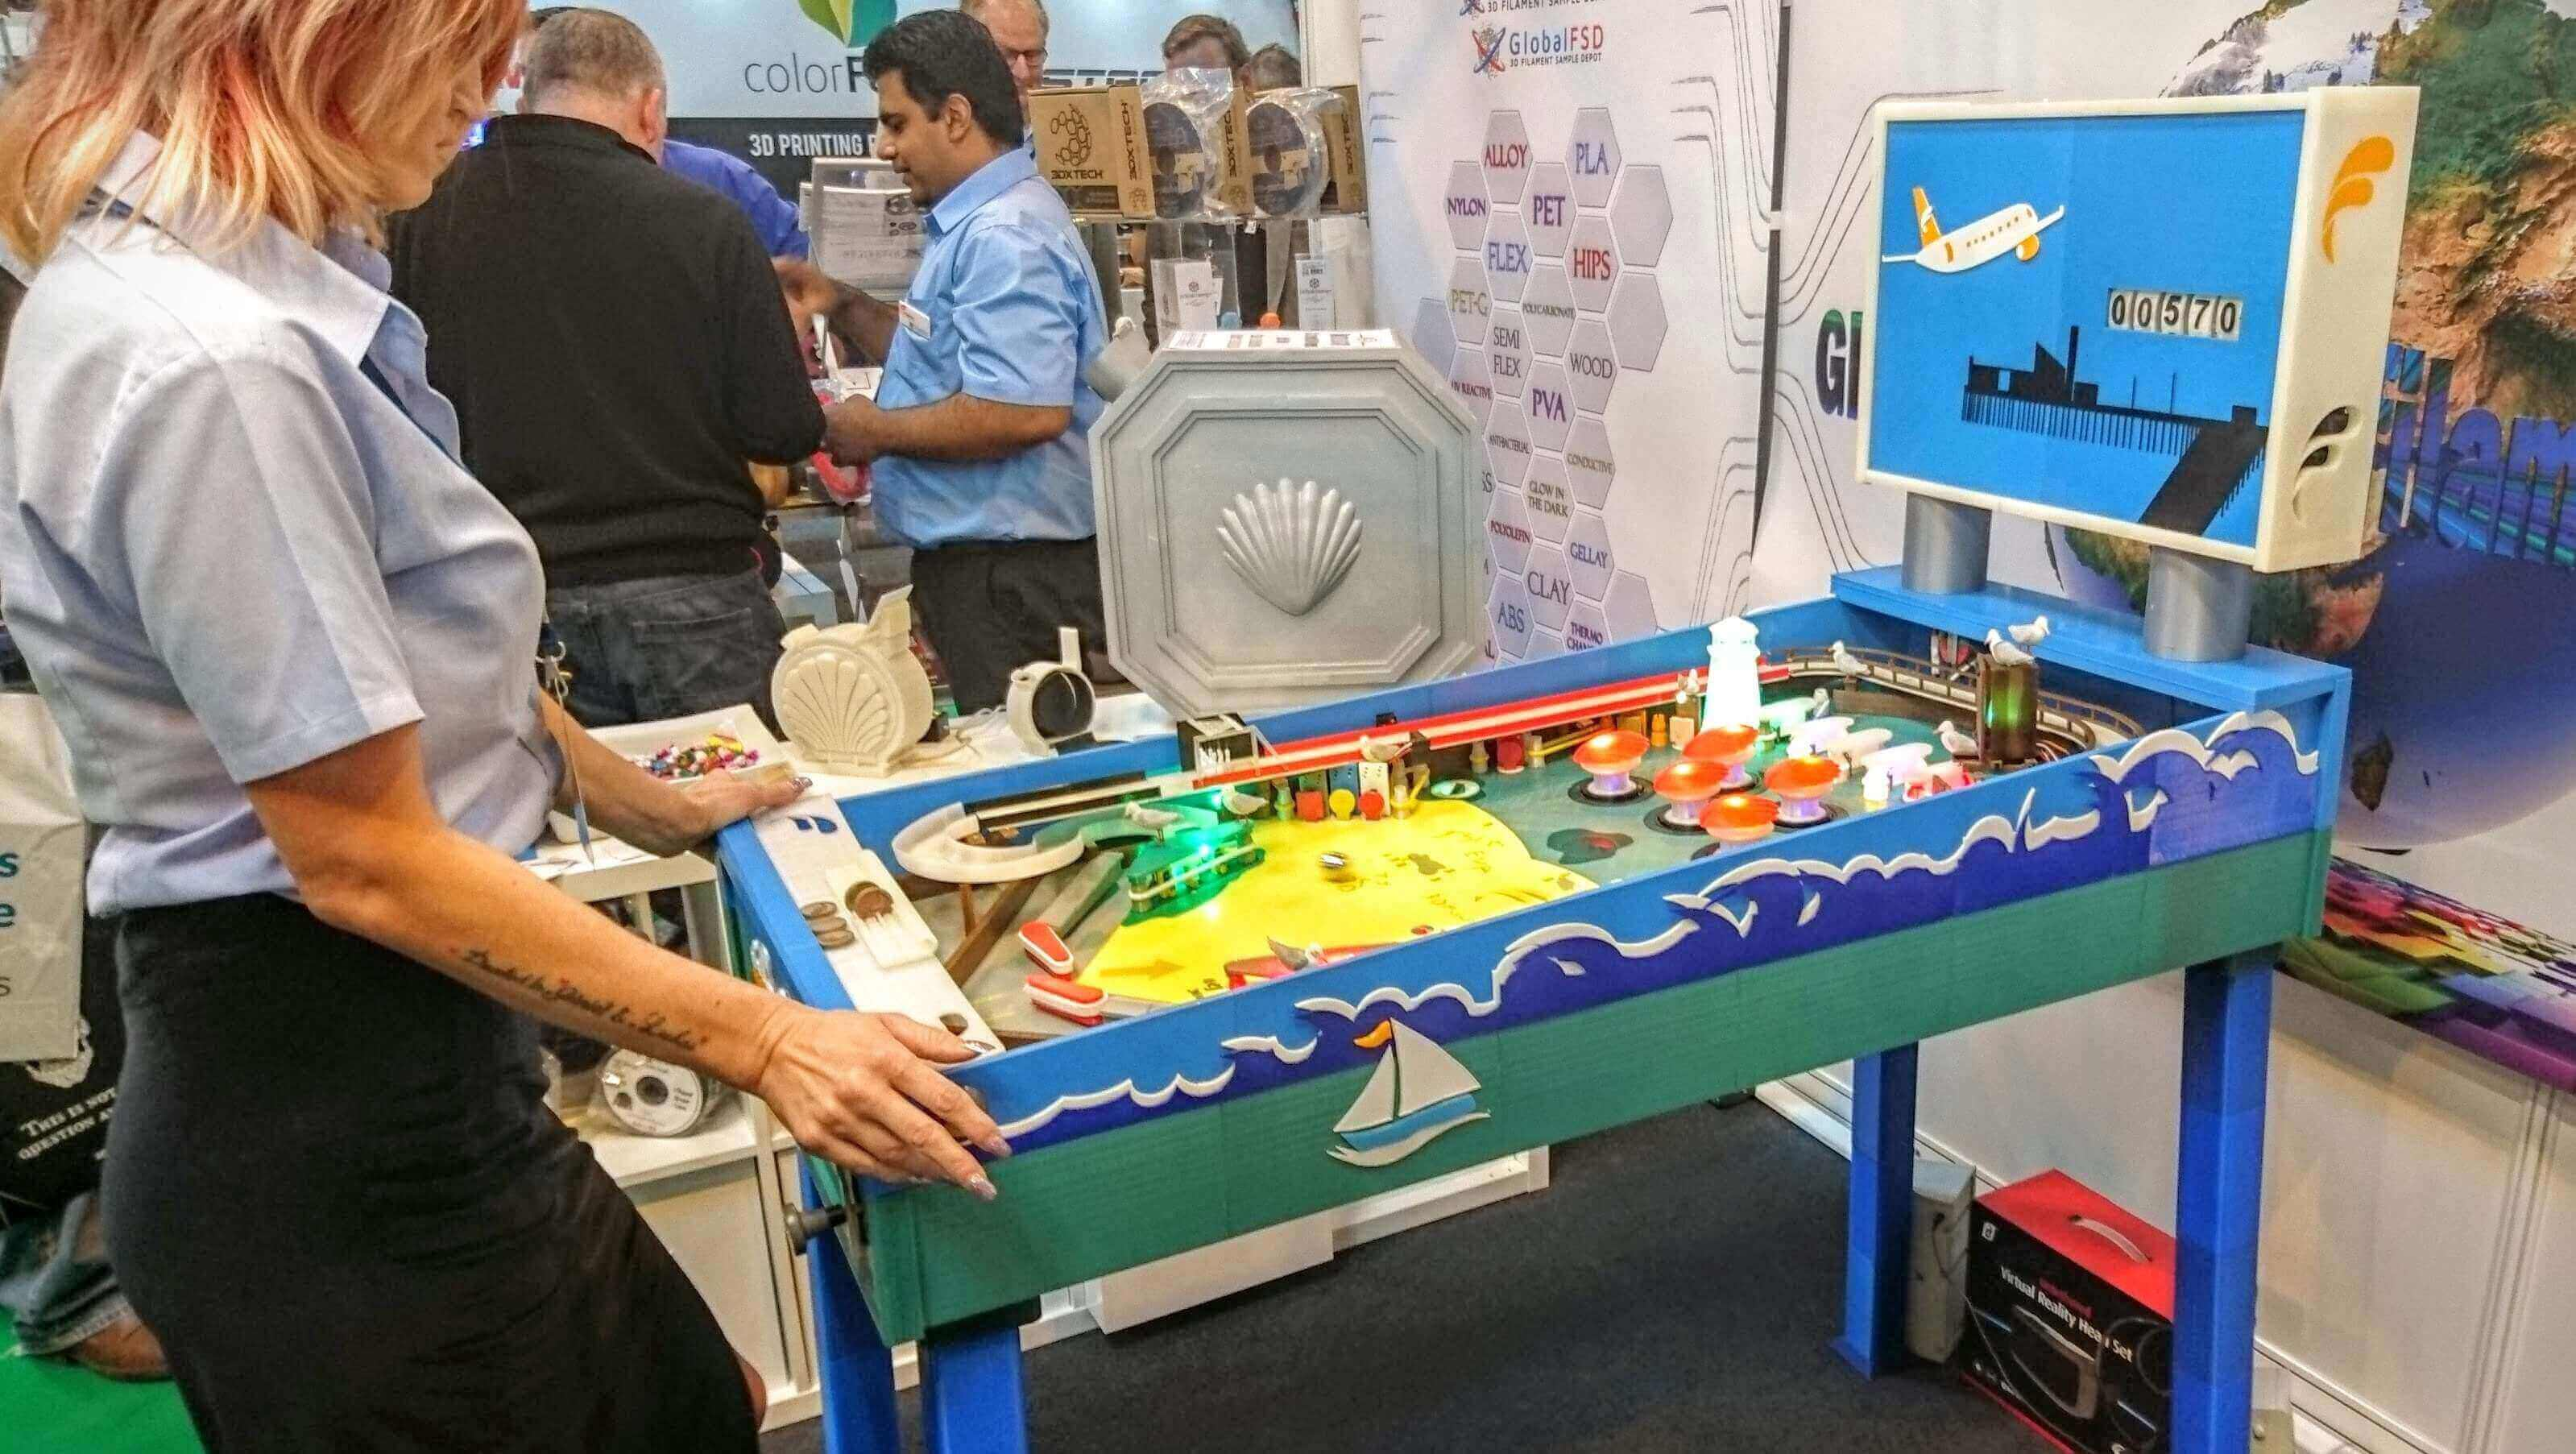 This 3D Printed Pinball Machine is a Piece of Art | All3DP